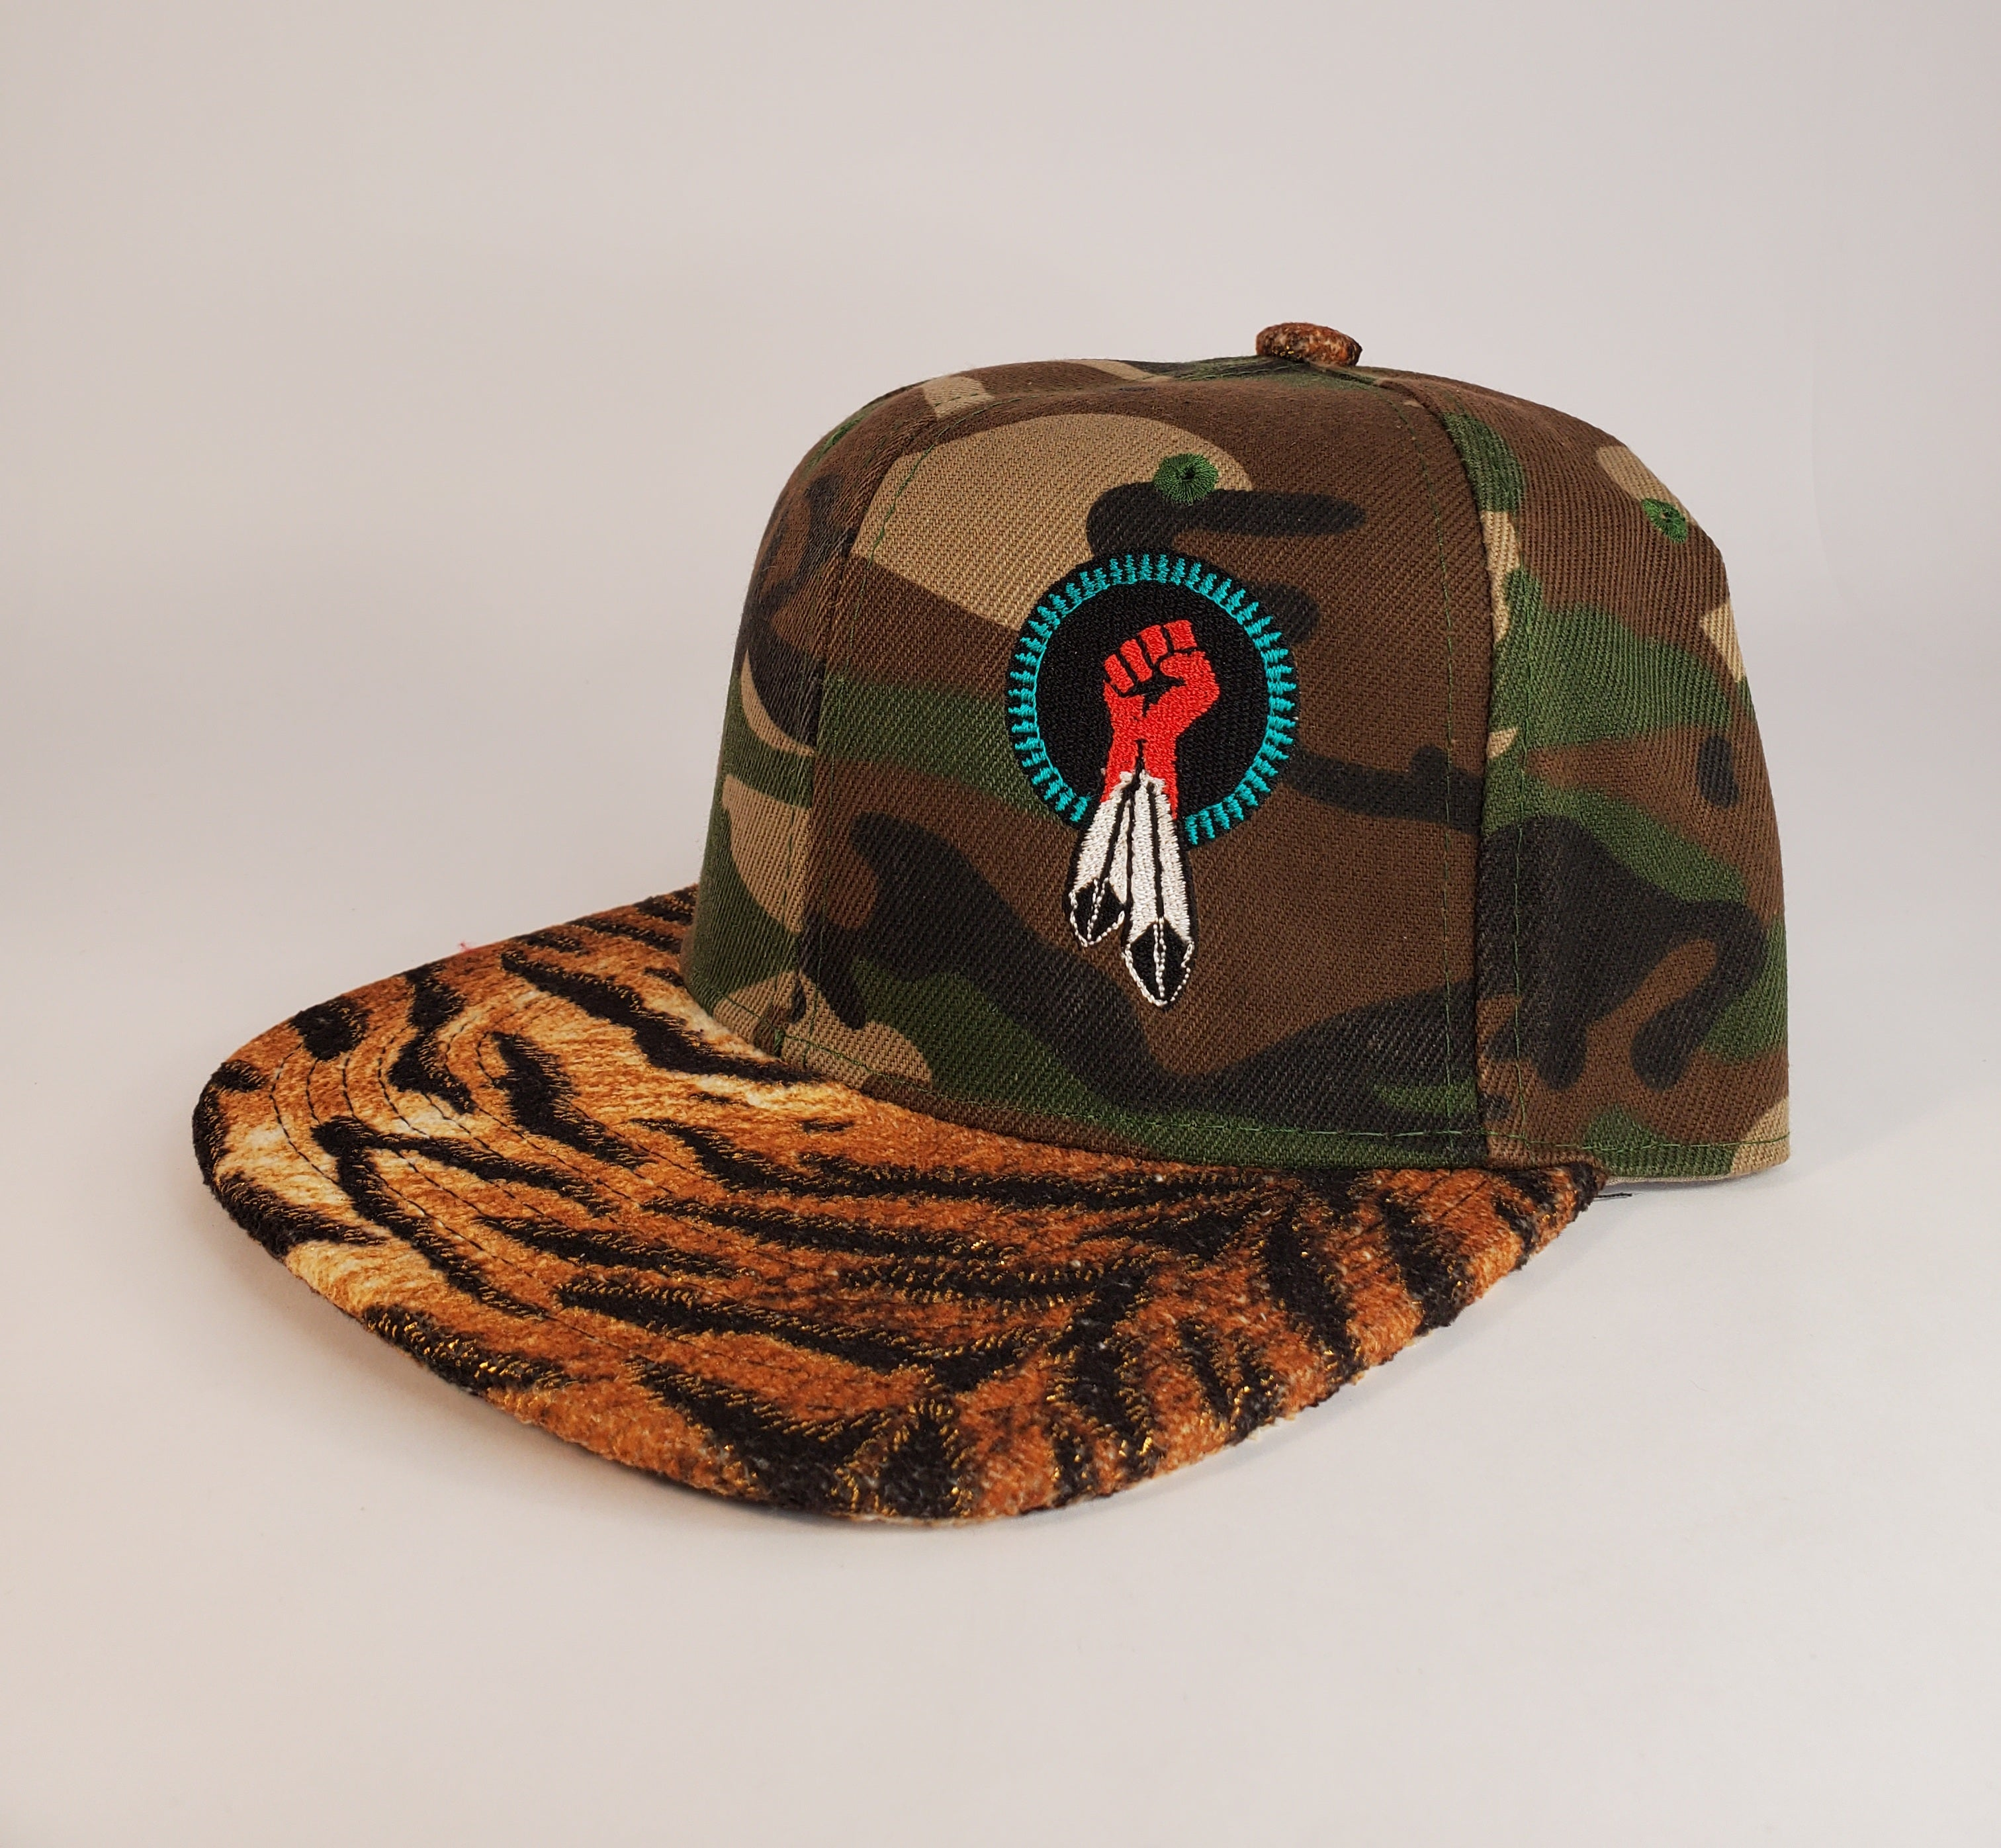 N8V MOVEMENT cap embroidered camo tiger snapback